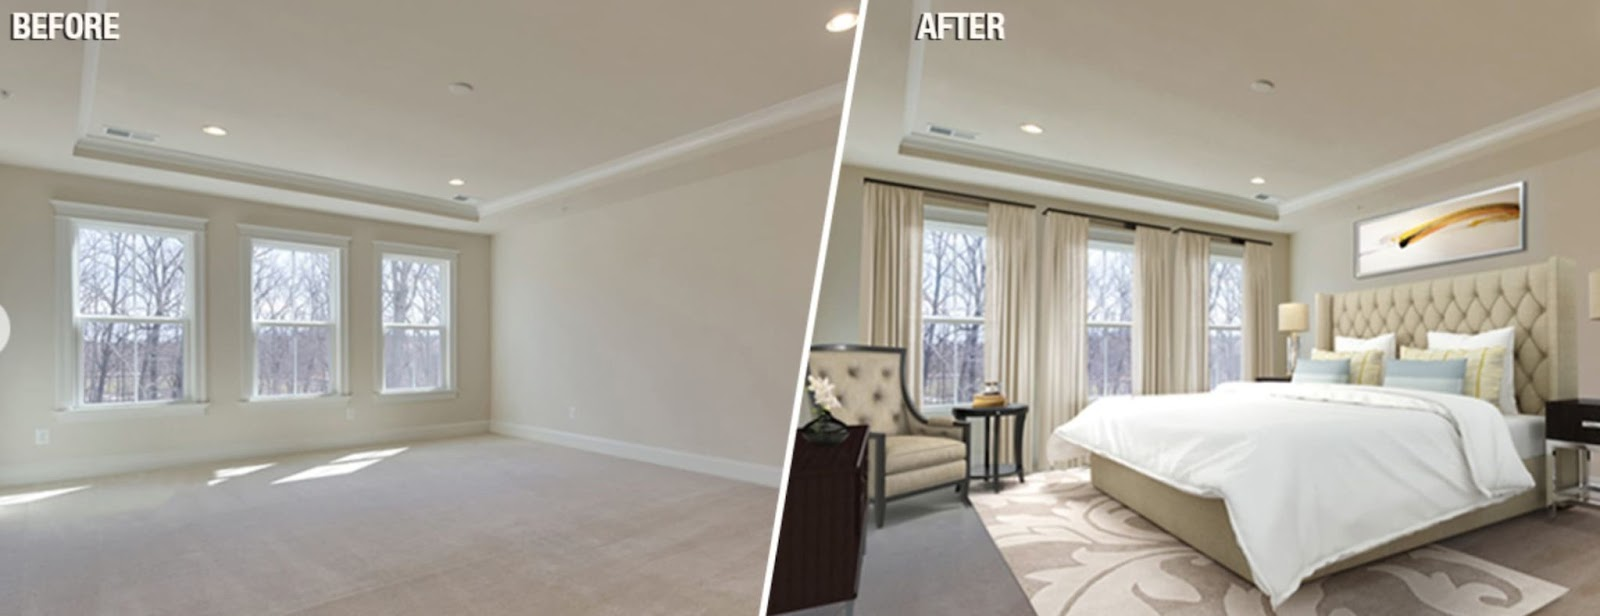 Virtual Home Staging Software padstyler